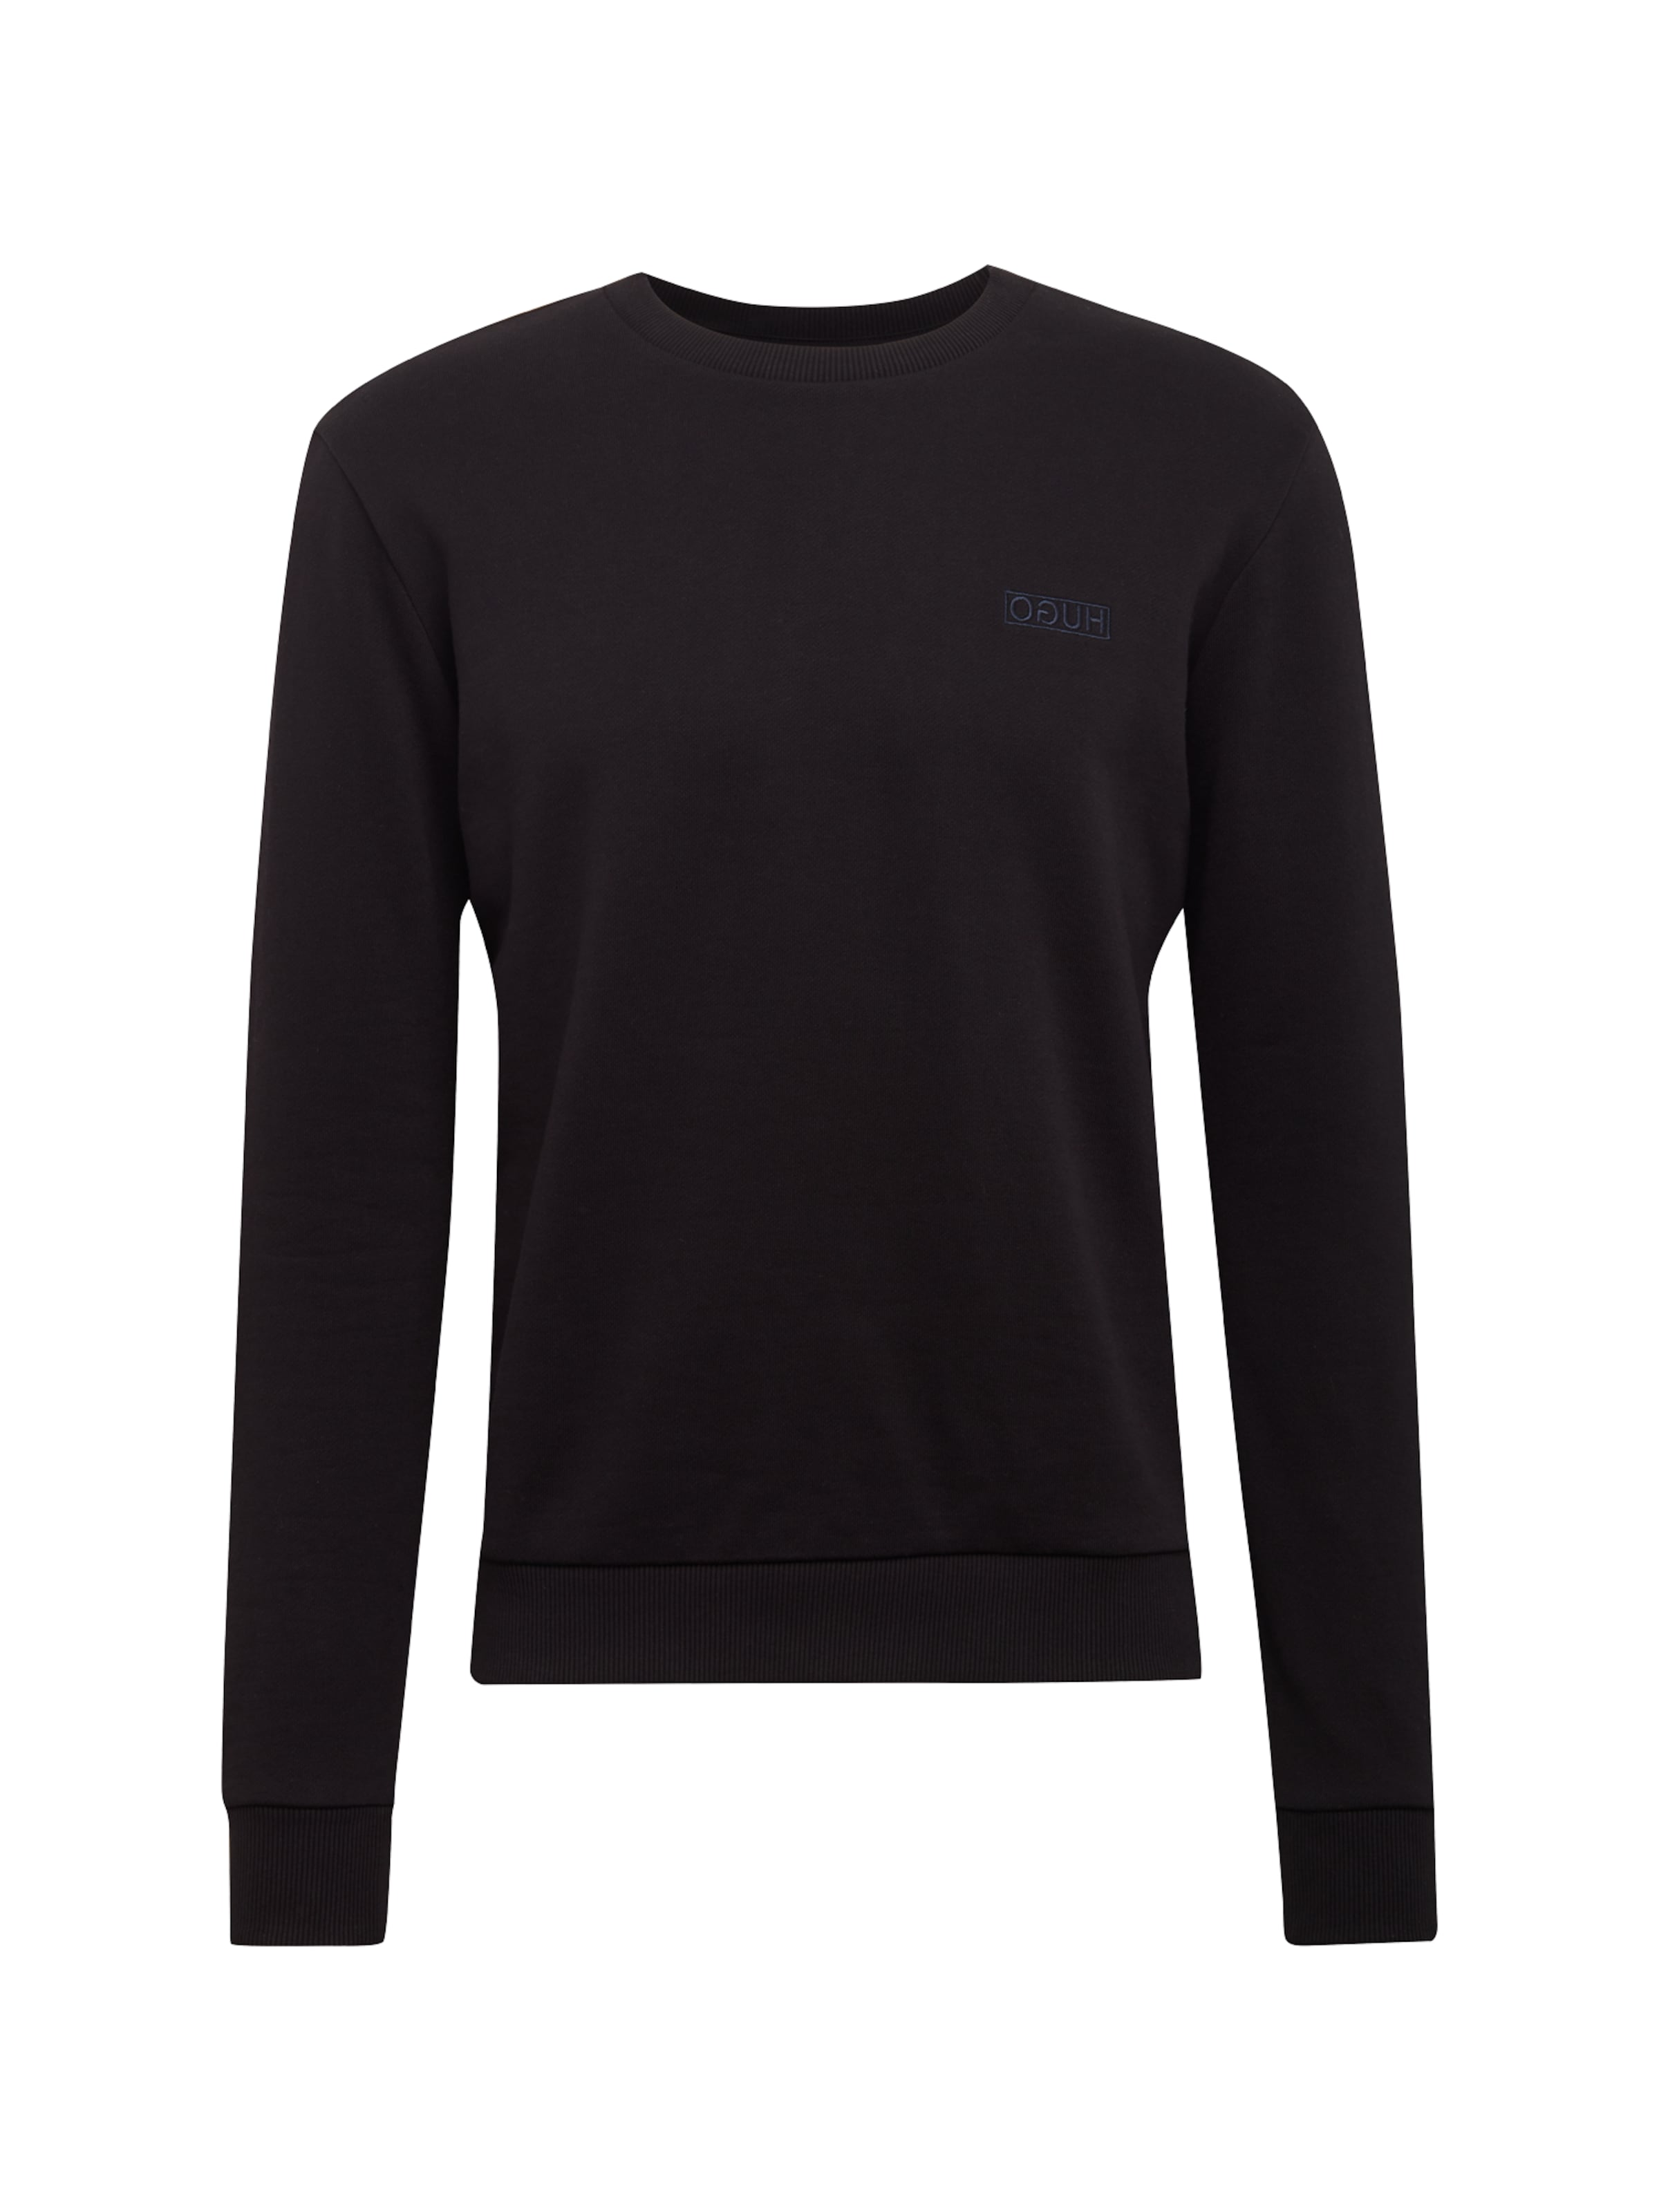 u2' En Noir 'drick shirt Hugo Sweat 6gYyb7vf